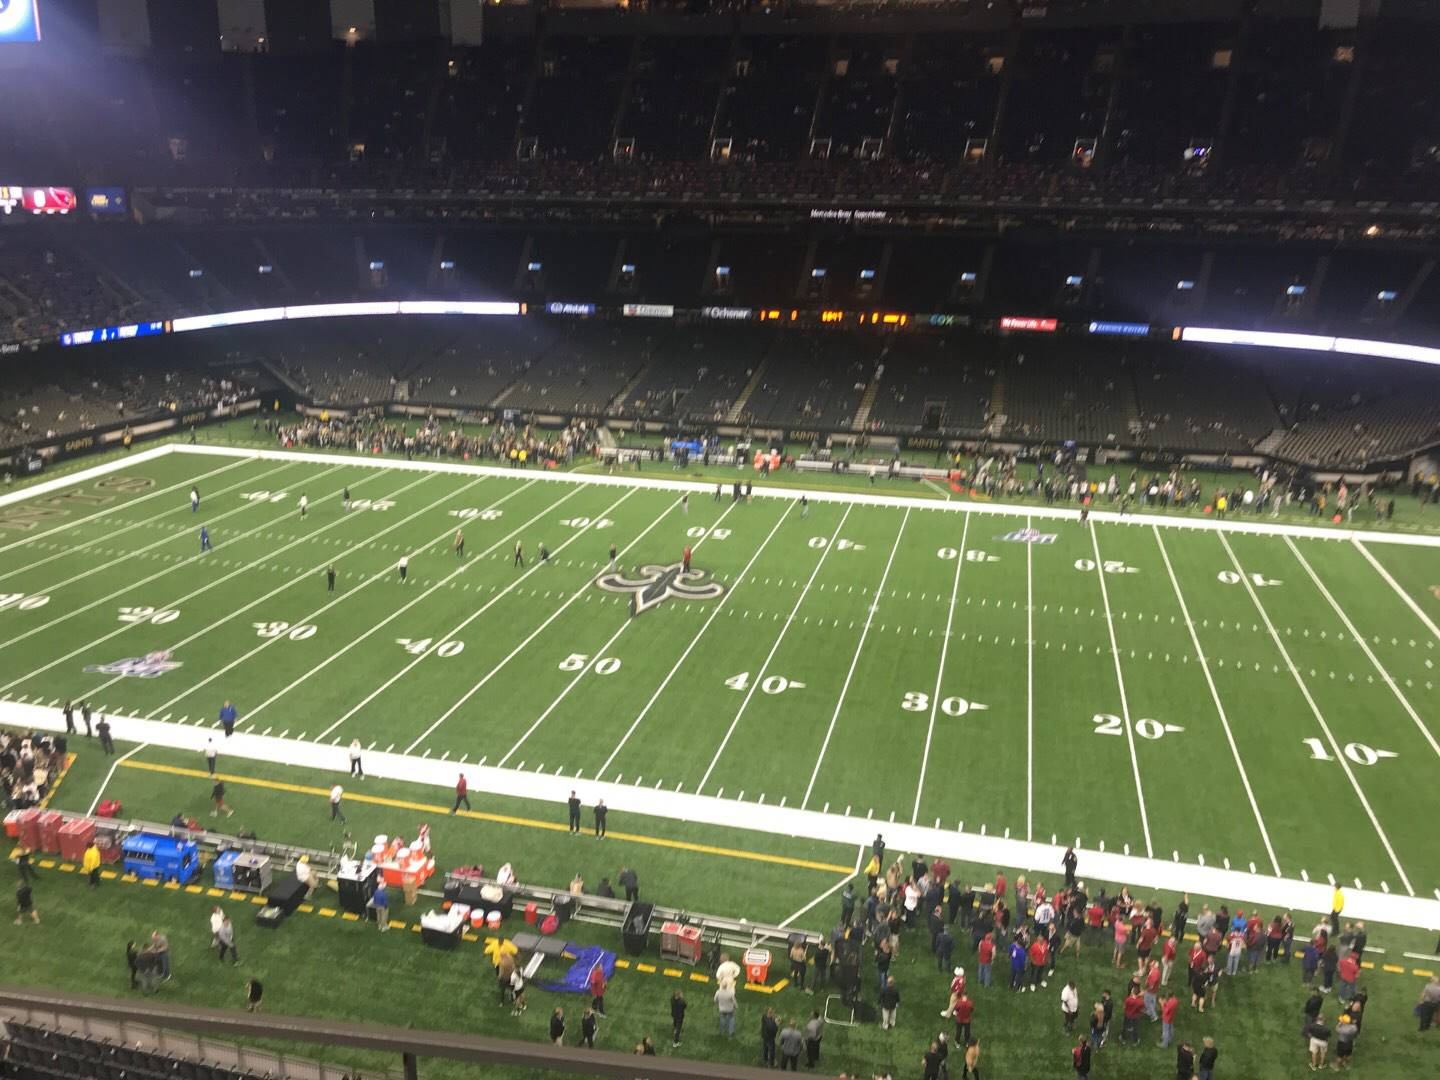 Mercedes-Benz Superdome Section 513 Row 3 Seat 4